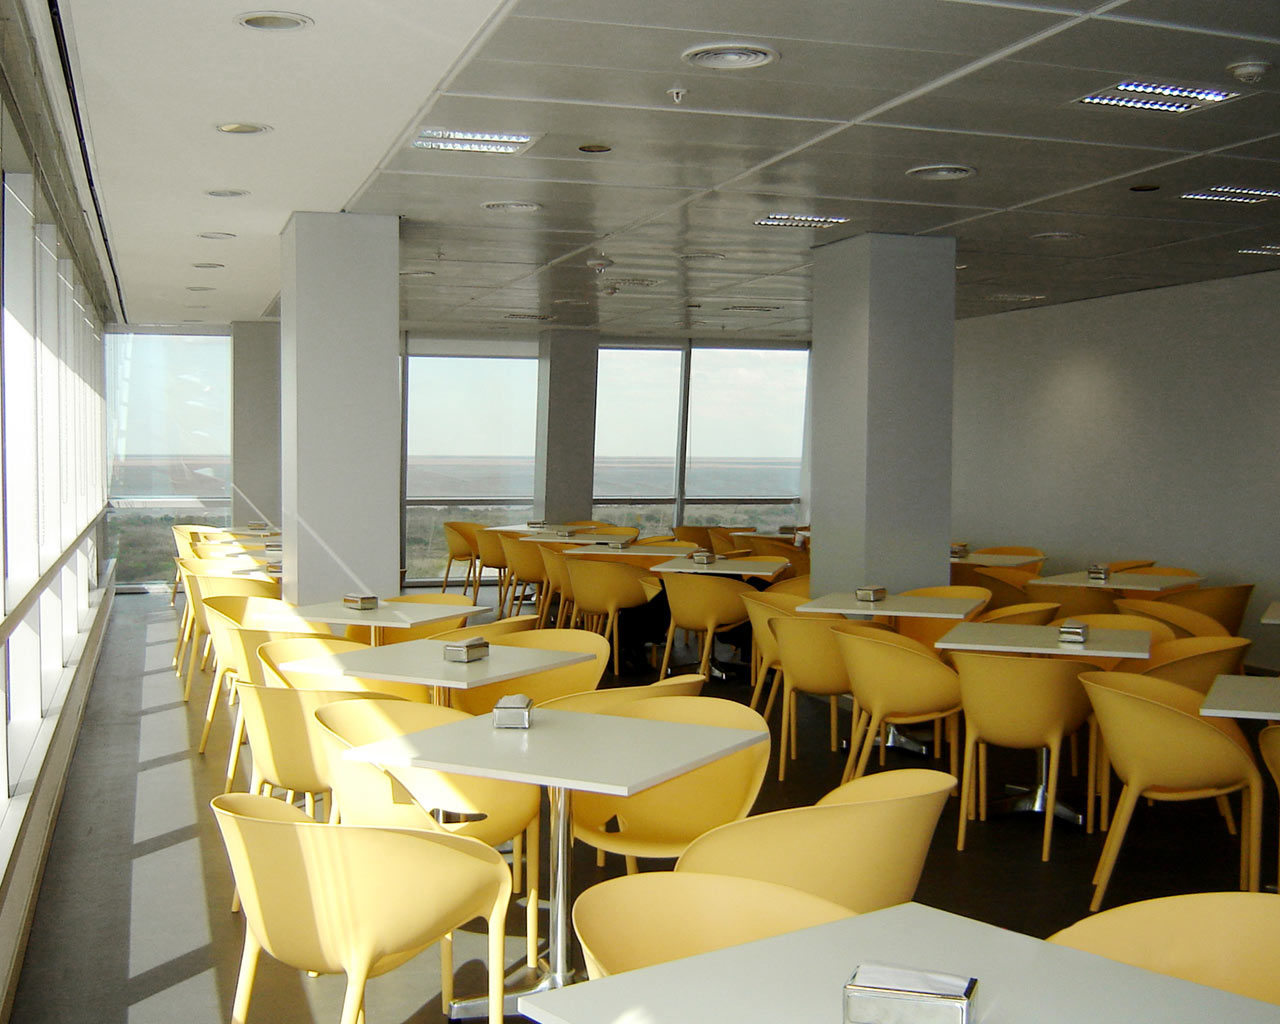 Cafeteria, Techint HQ Offices, Buenos Aires, Argentina